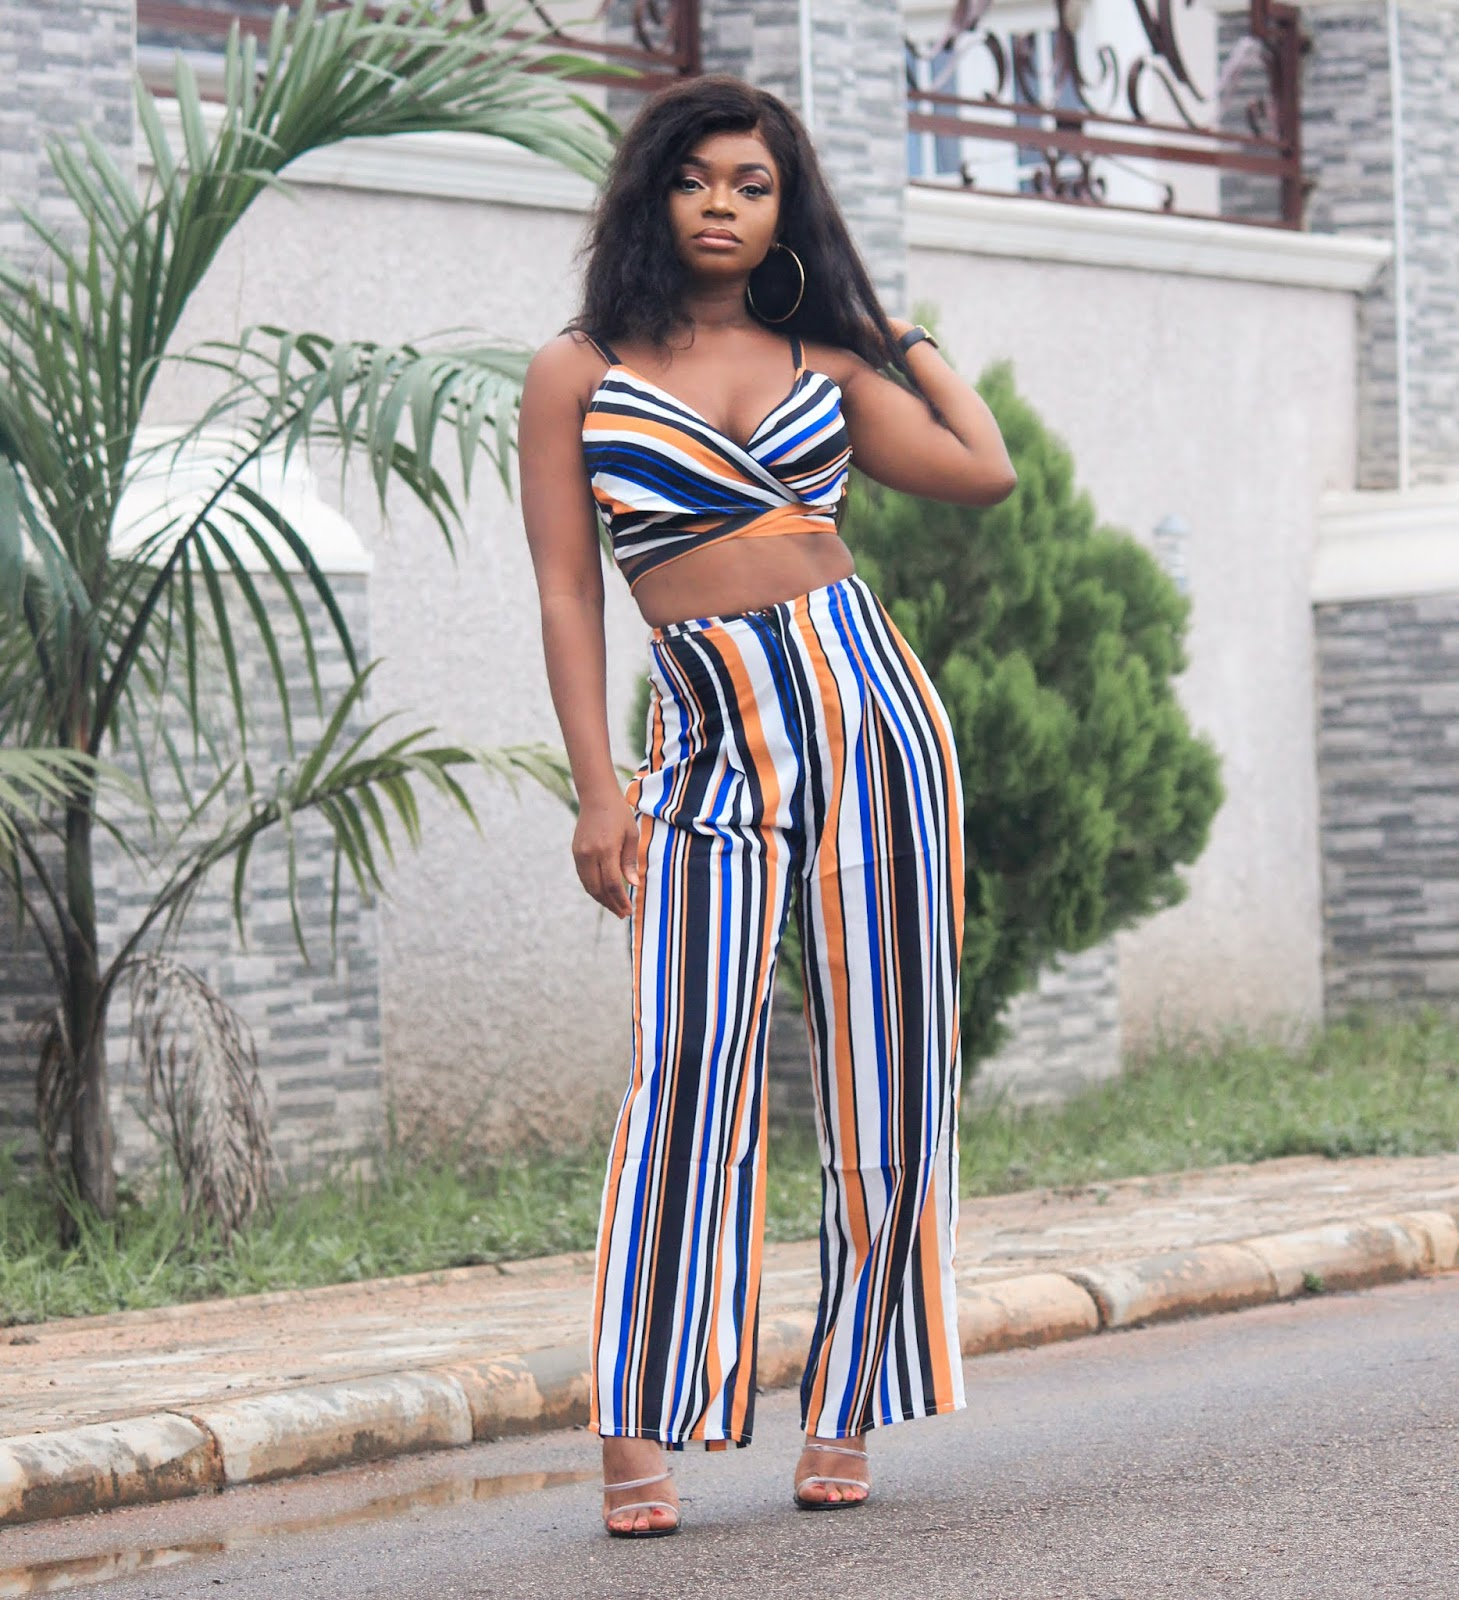 STRIPED TROUSER & TOP - Zaful Striped Palazzo Trouser and Top